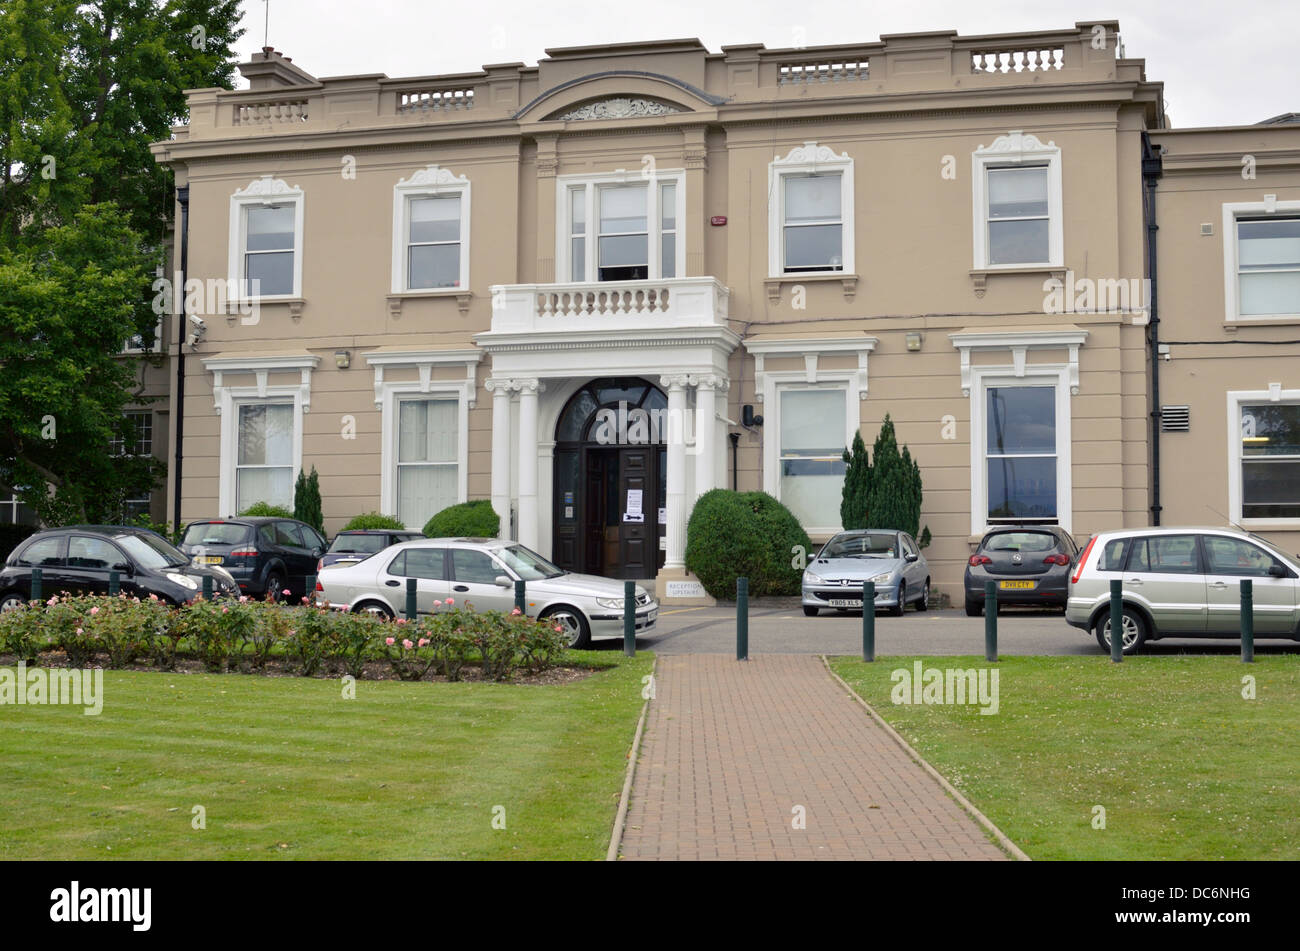 Woodhouse College in North Finchley, London, UK. Stock Photo